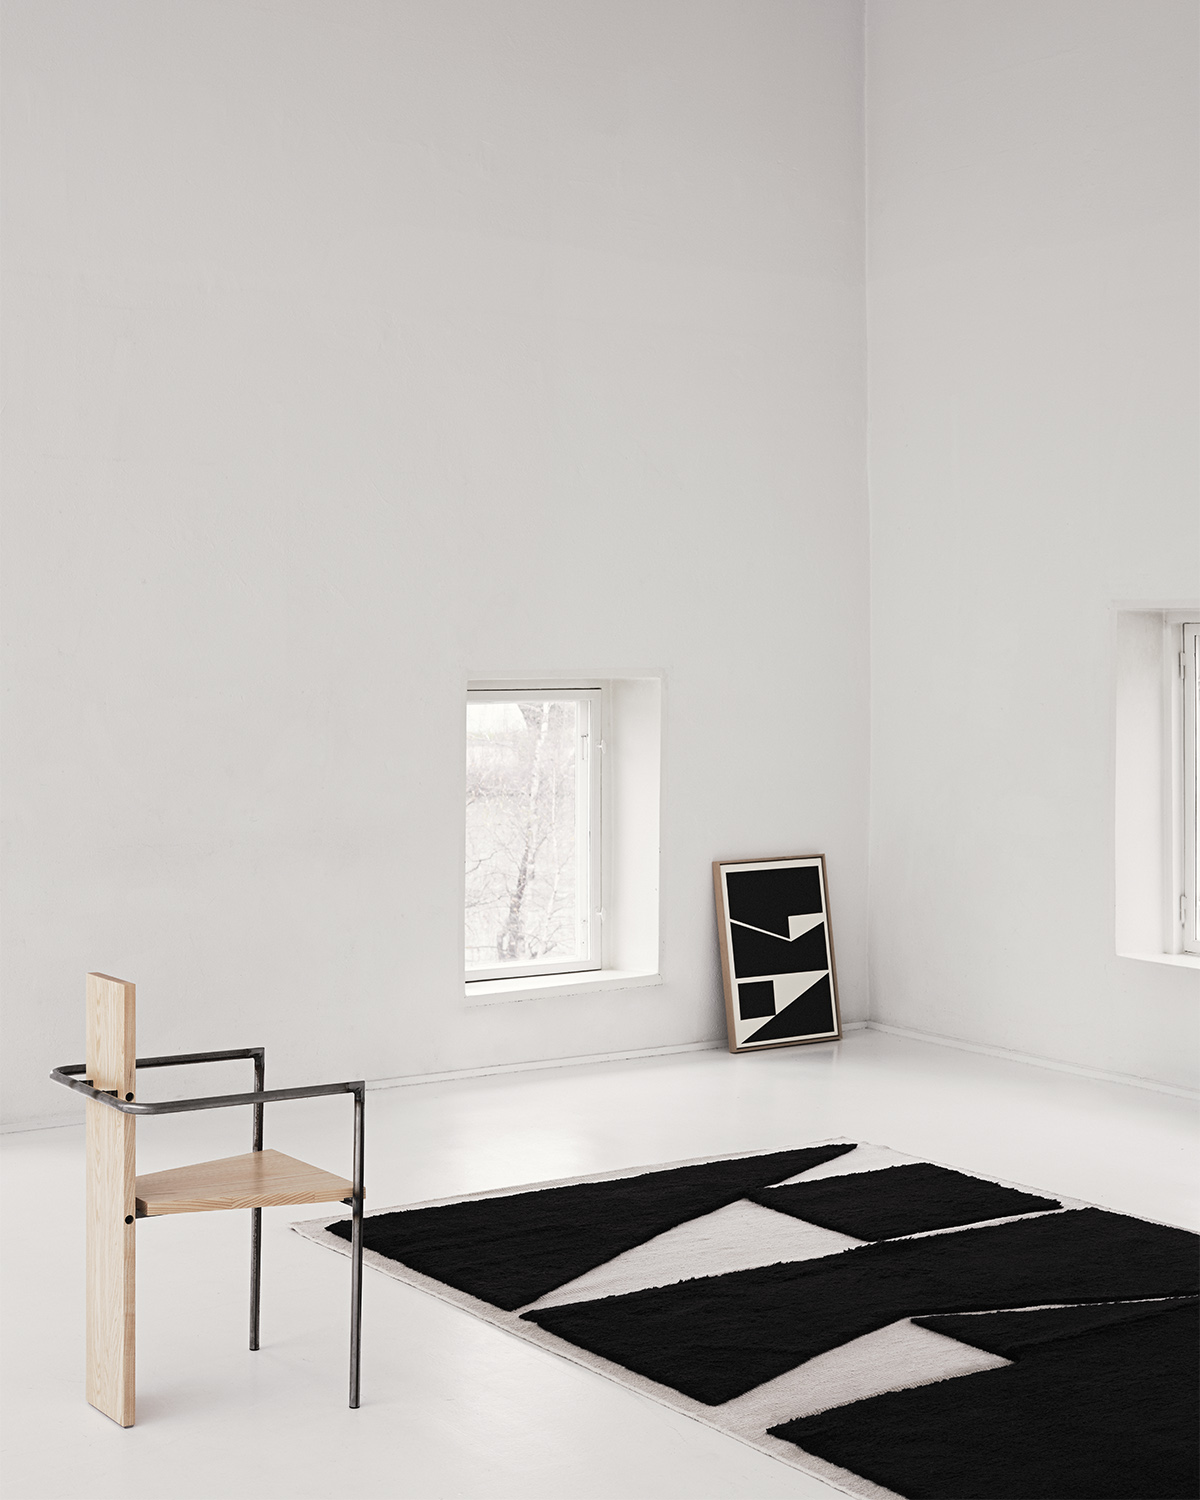 The Untitled 1 rug in Black and Dusty White displayed in a contemporary, white space shown with the artwork that inspired it as well as a design chair.